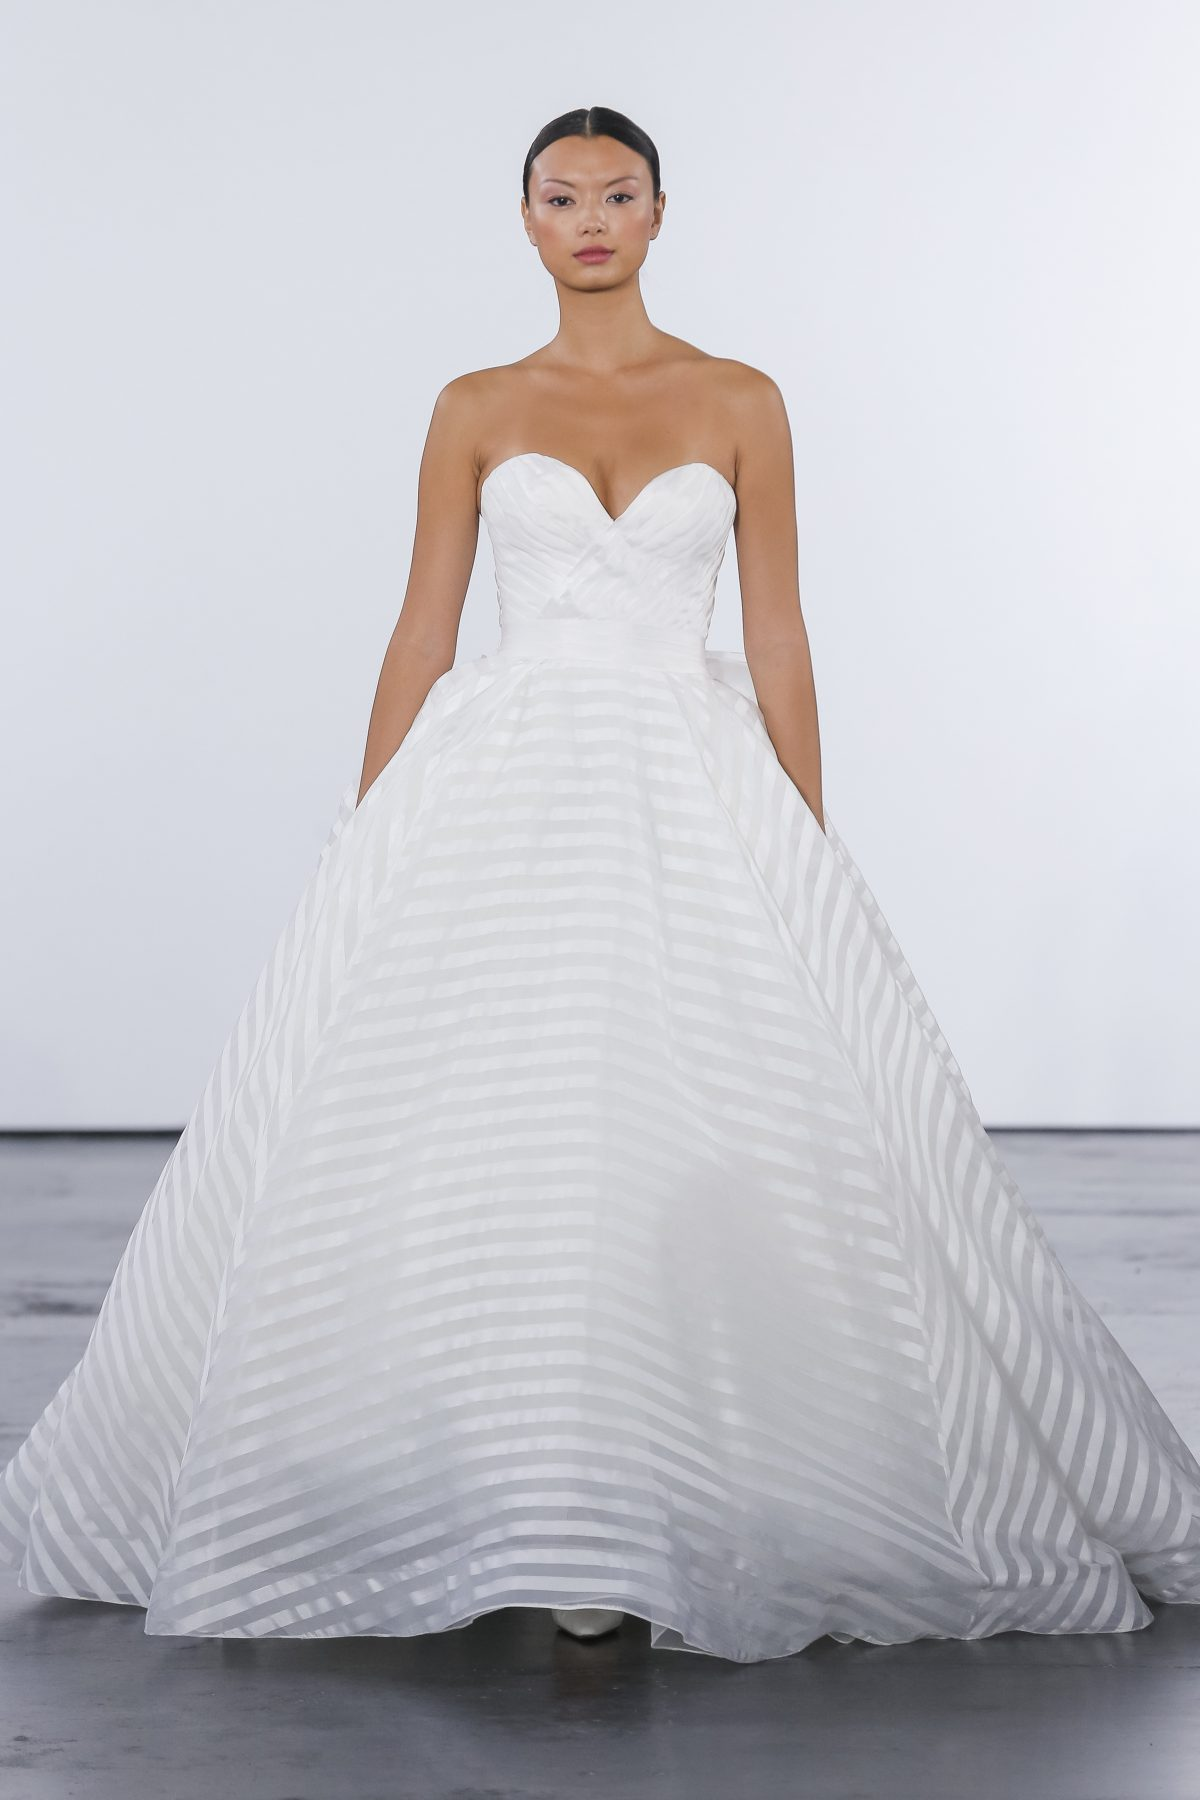 Indulging Train Ball Gown Wedding Dress By Dennis Basso Image Zoomed Ball Gown Wedding Dress Kleinfeld Bridal Ball Gown Wedding Dresses 2018 Ball Gown Wedding Dresses wedding dress Ball Gown Wedding Dresses